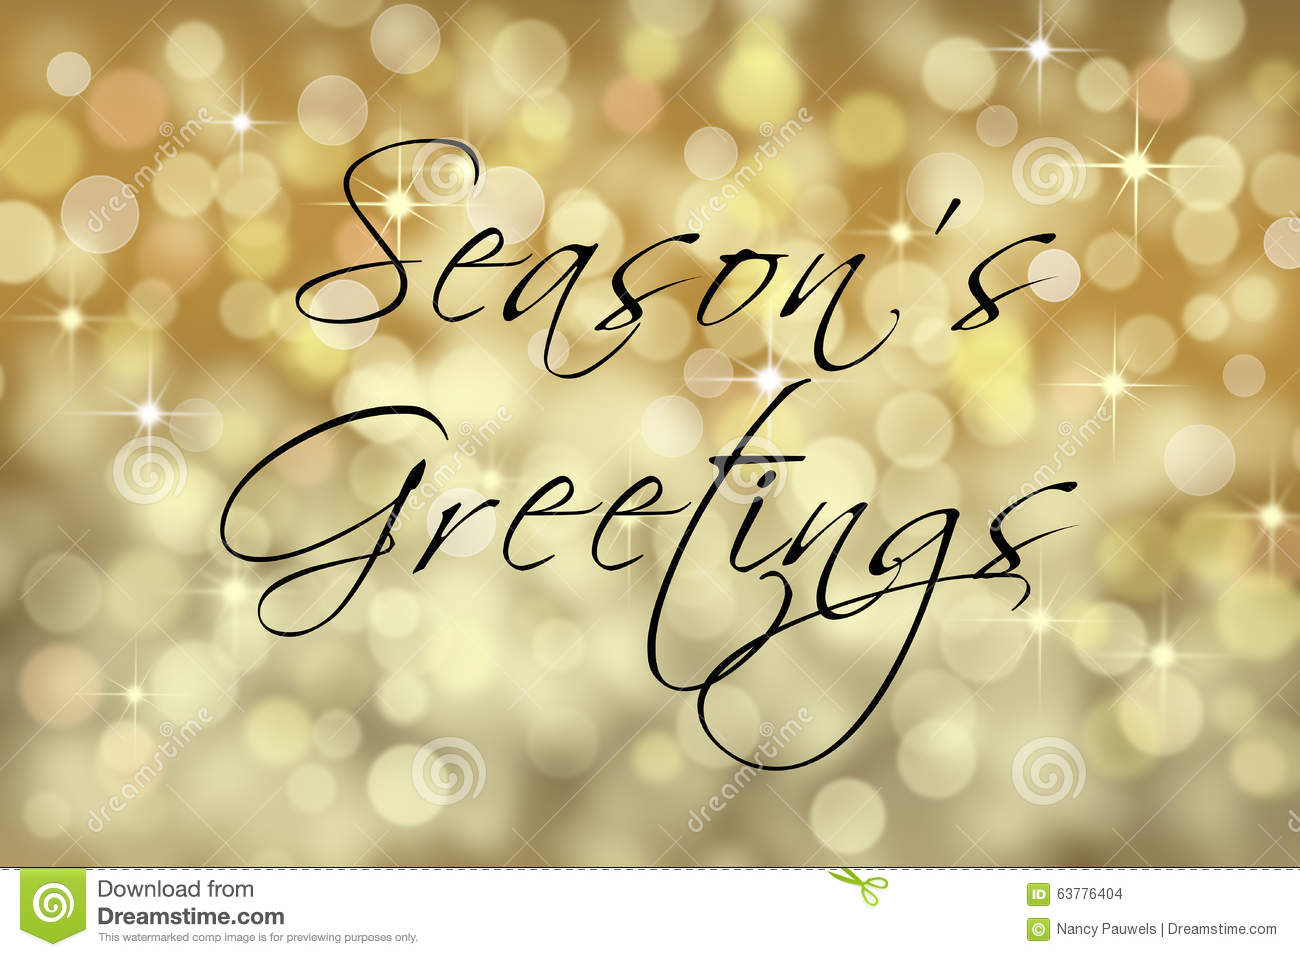 Seasons Greetings text card with bokeh background.